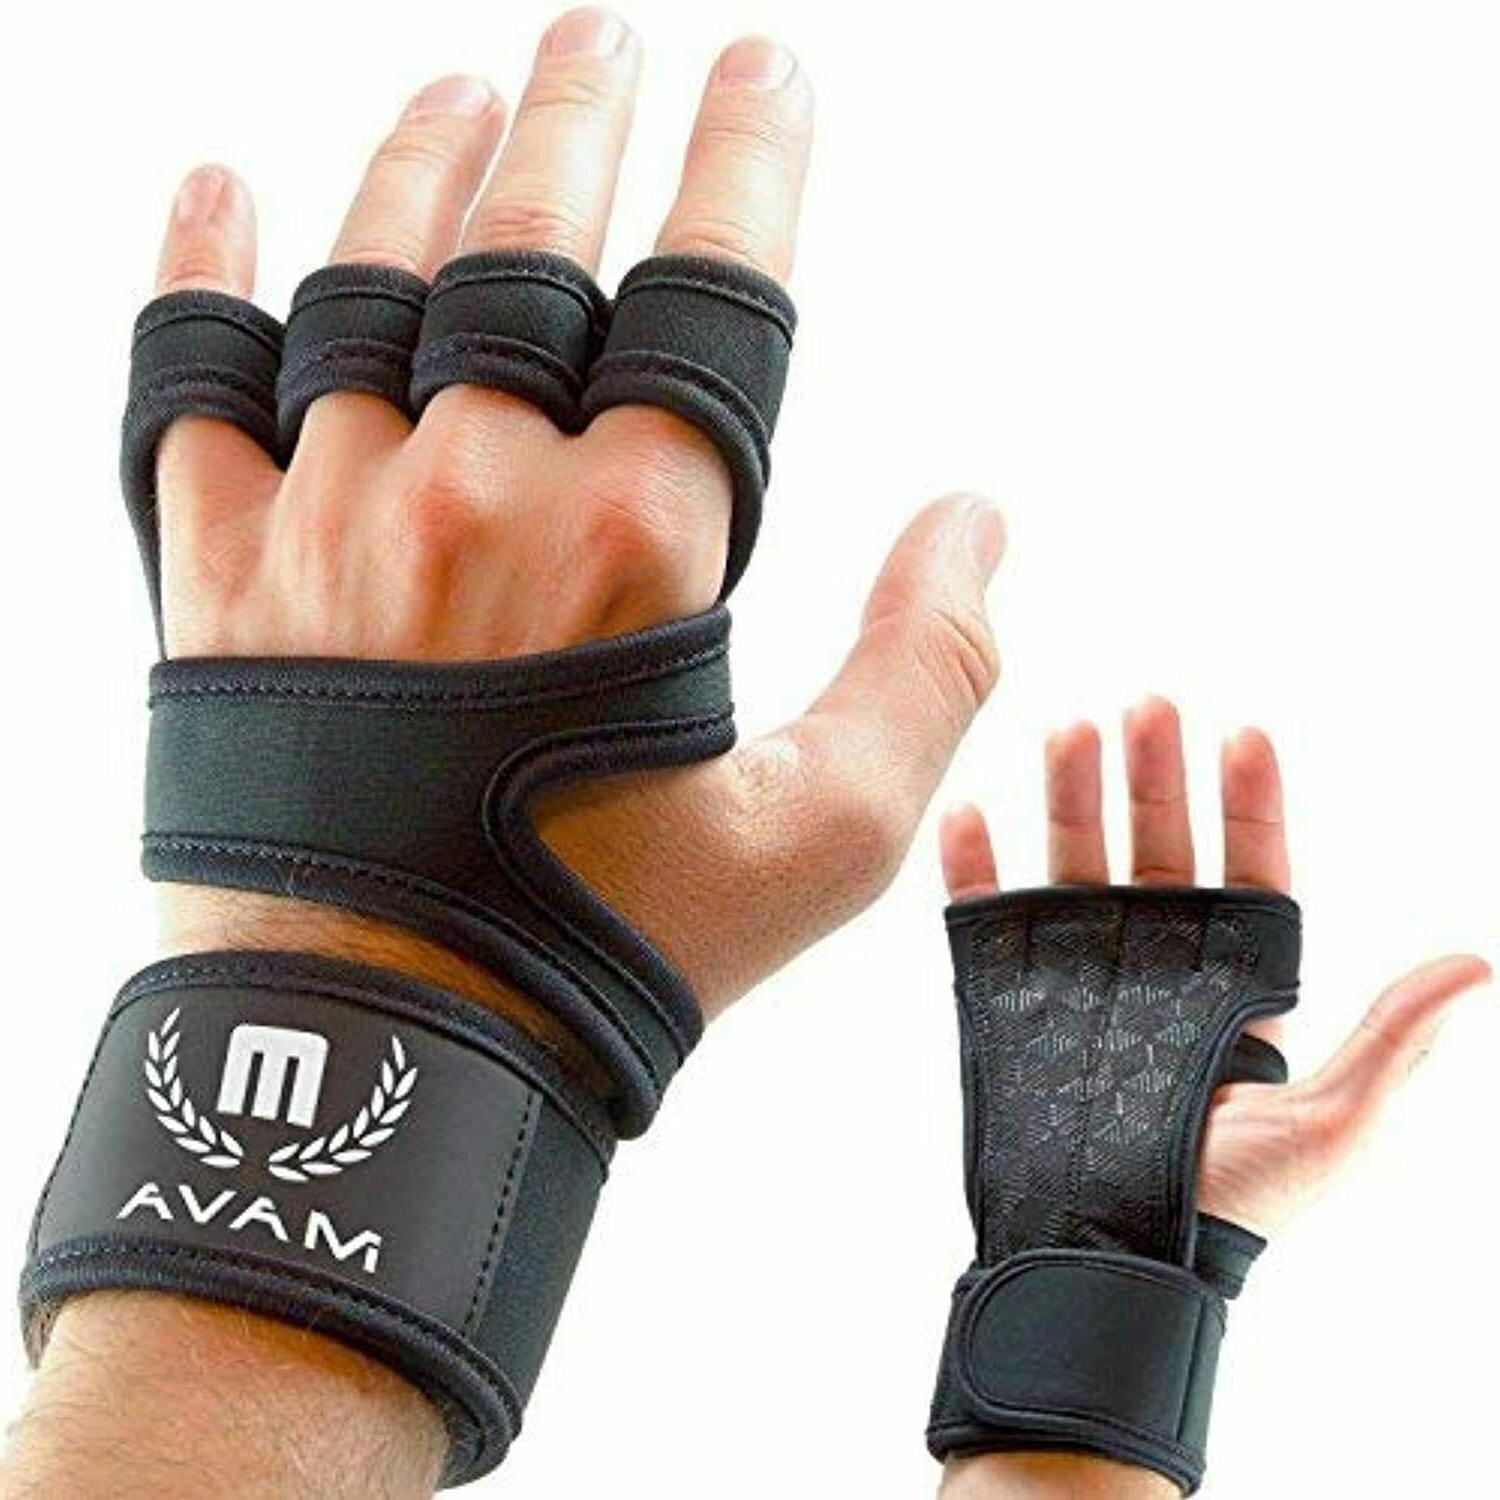 cross training workout gloves with wrist support